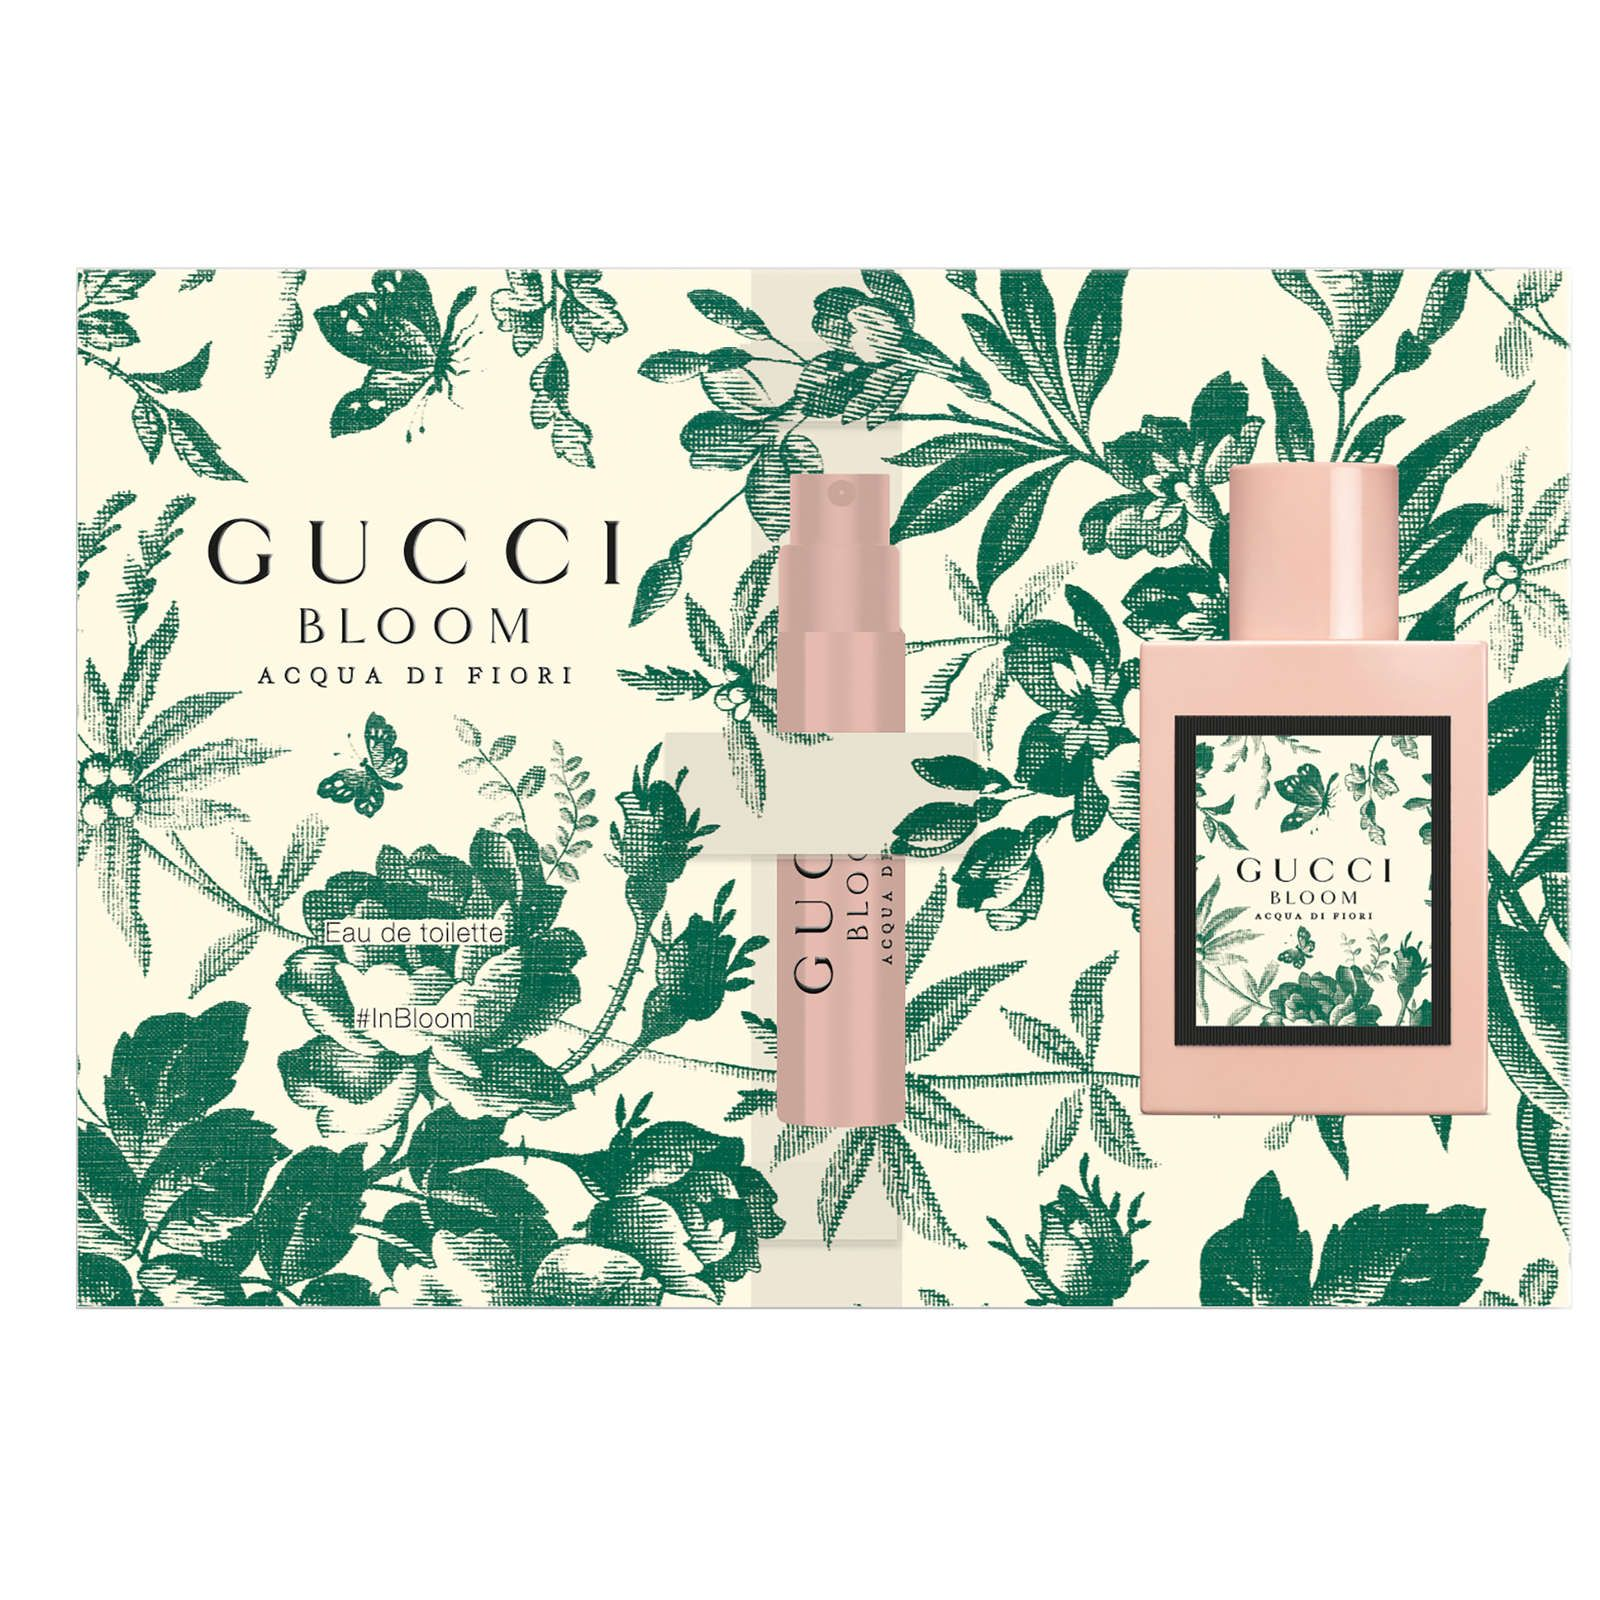 Gucci Bloom Acqua Di Fiori Sample Beauty Fragrance Samples